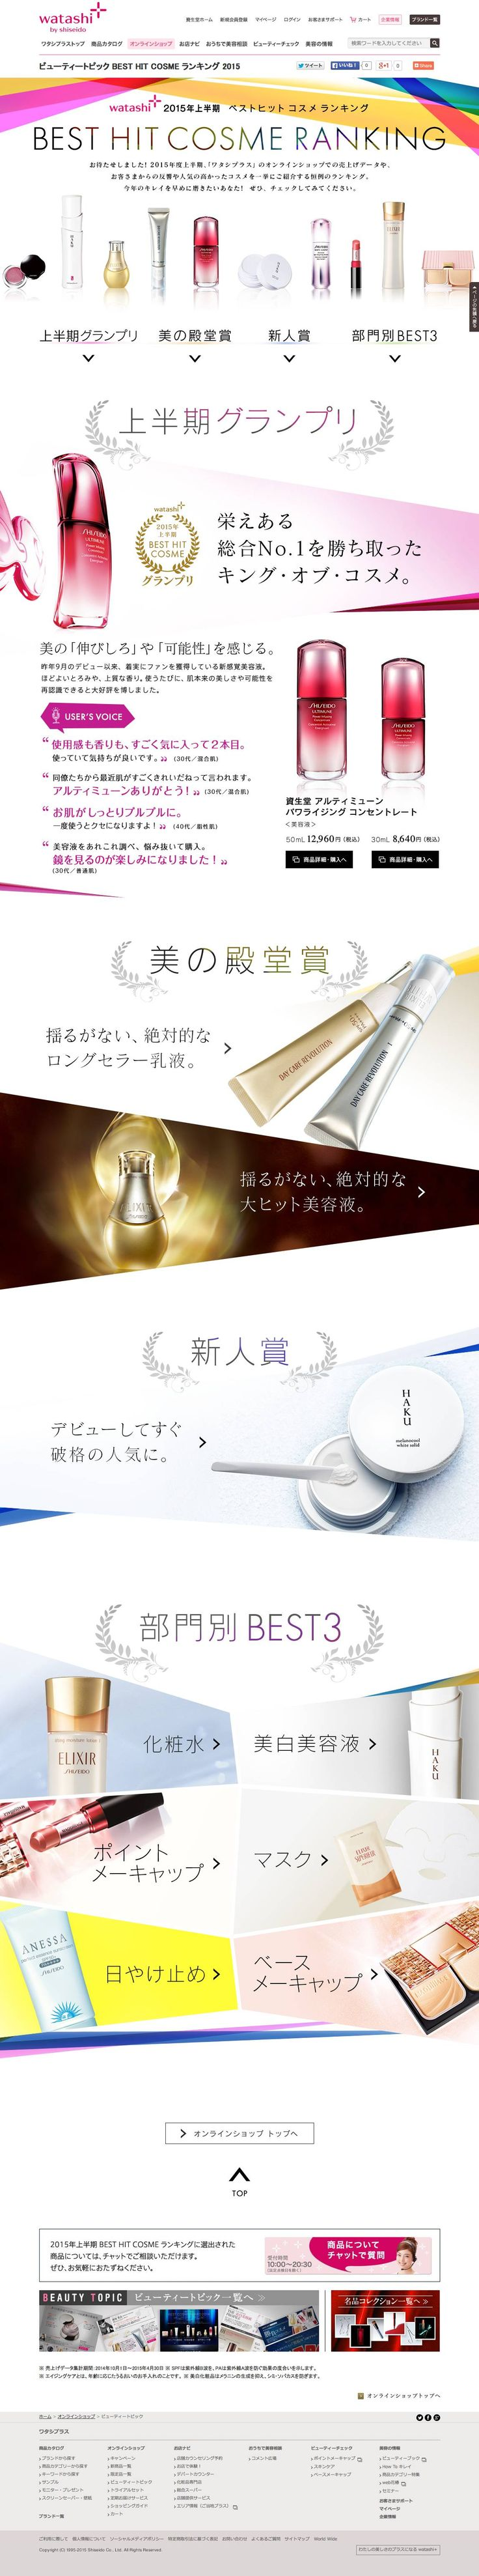 http://www.shiseido.co.jp/cms/onlineshop/h/beautytopic/1507/index2.html?sc_oltbn=topics_pc_btopic1507